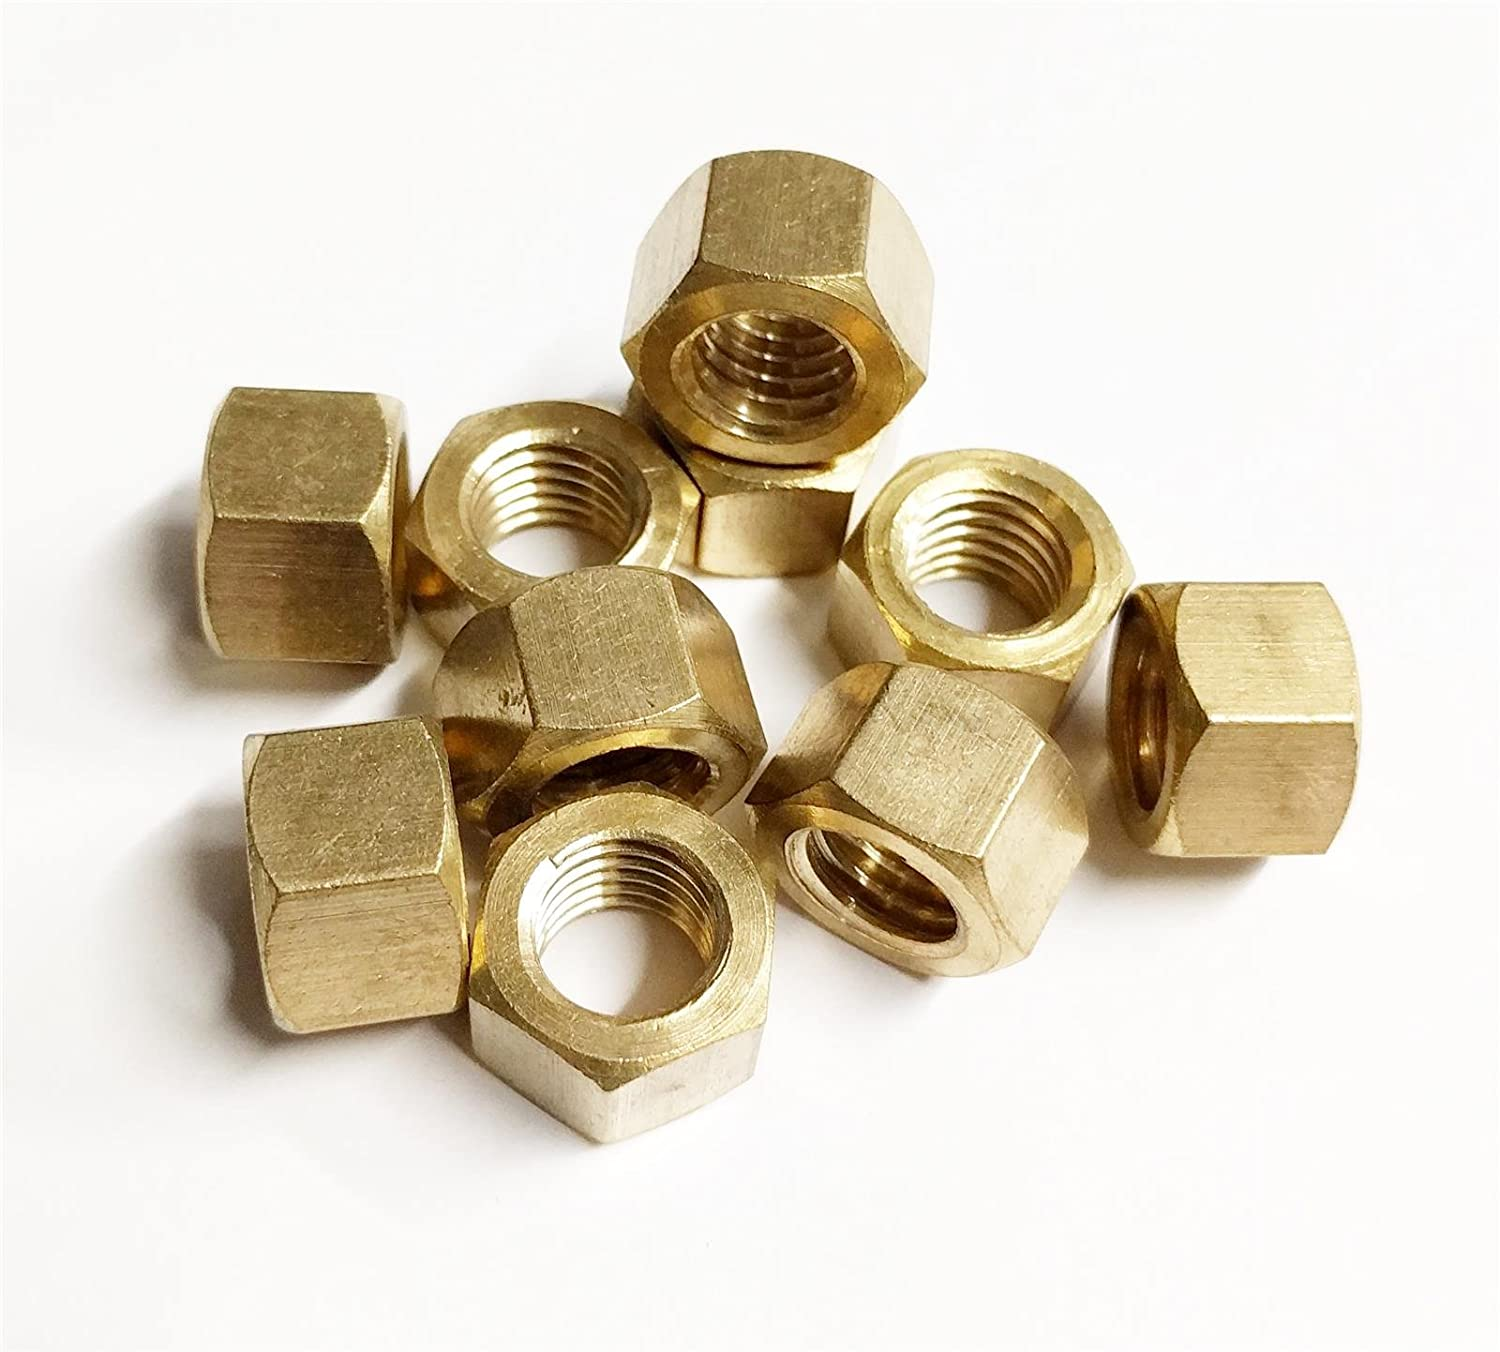 10x Brass Metric Exhaust Manifold Nut 10mm x 1.25mm High Temperature Nuts AutoPower